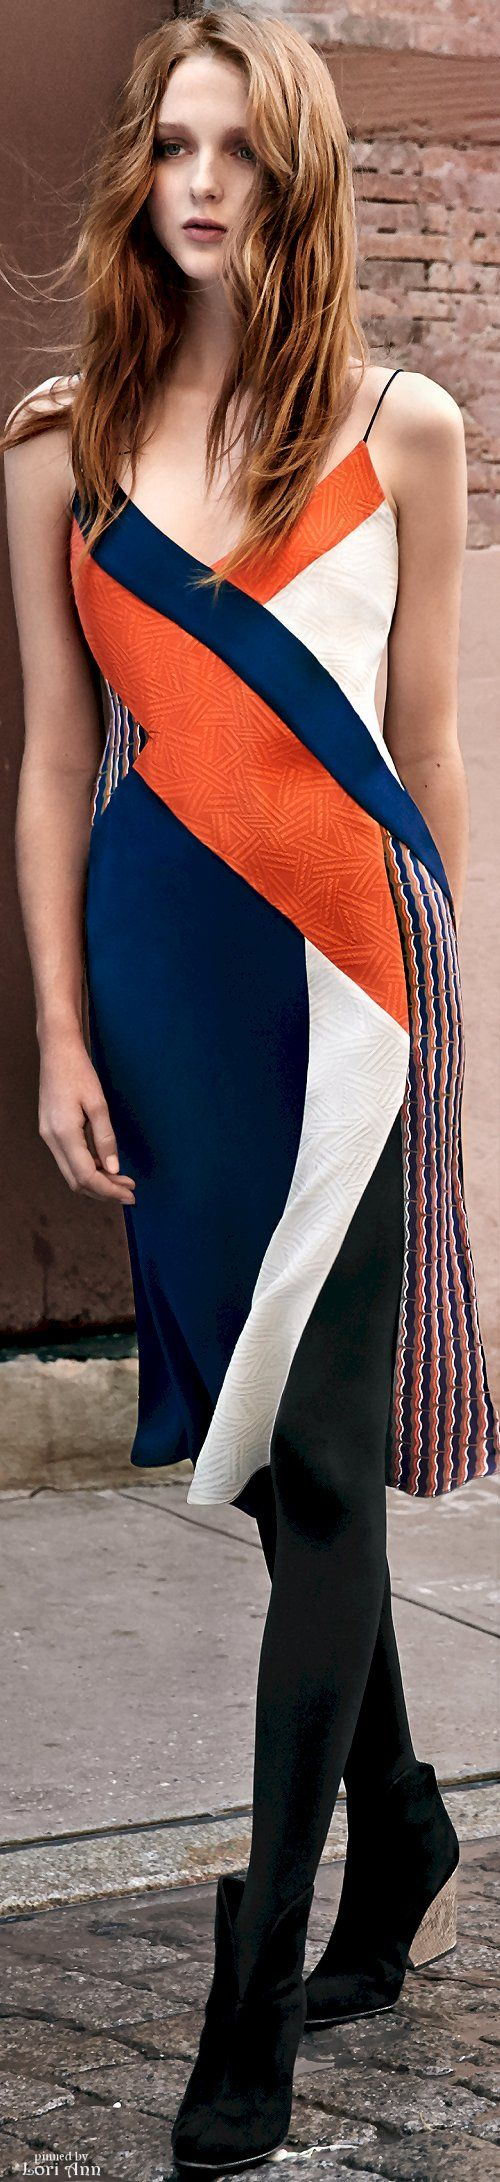 Diane von Furstenberg Pre-Fall 2016 women fashion outfit clothing style apparel @roressclothes closet ideas